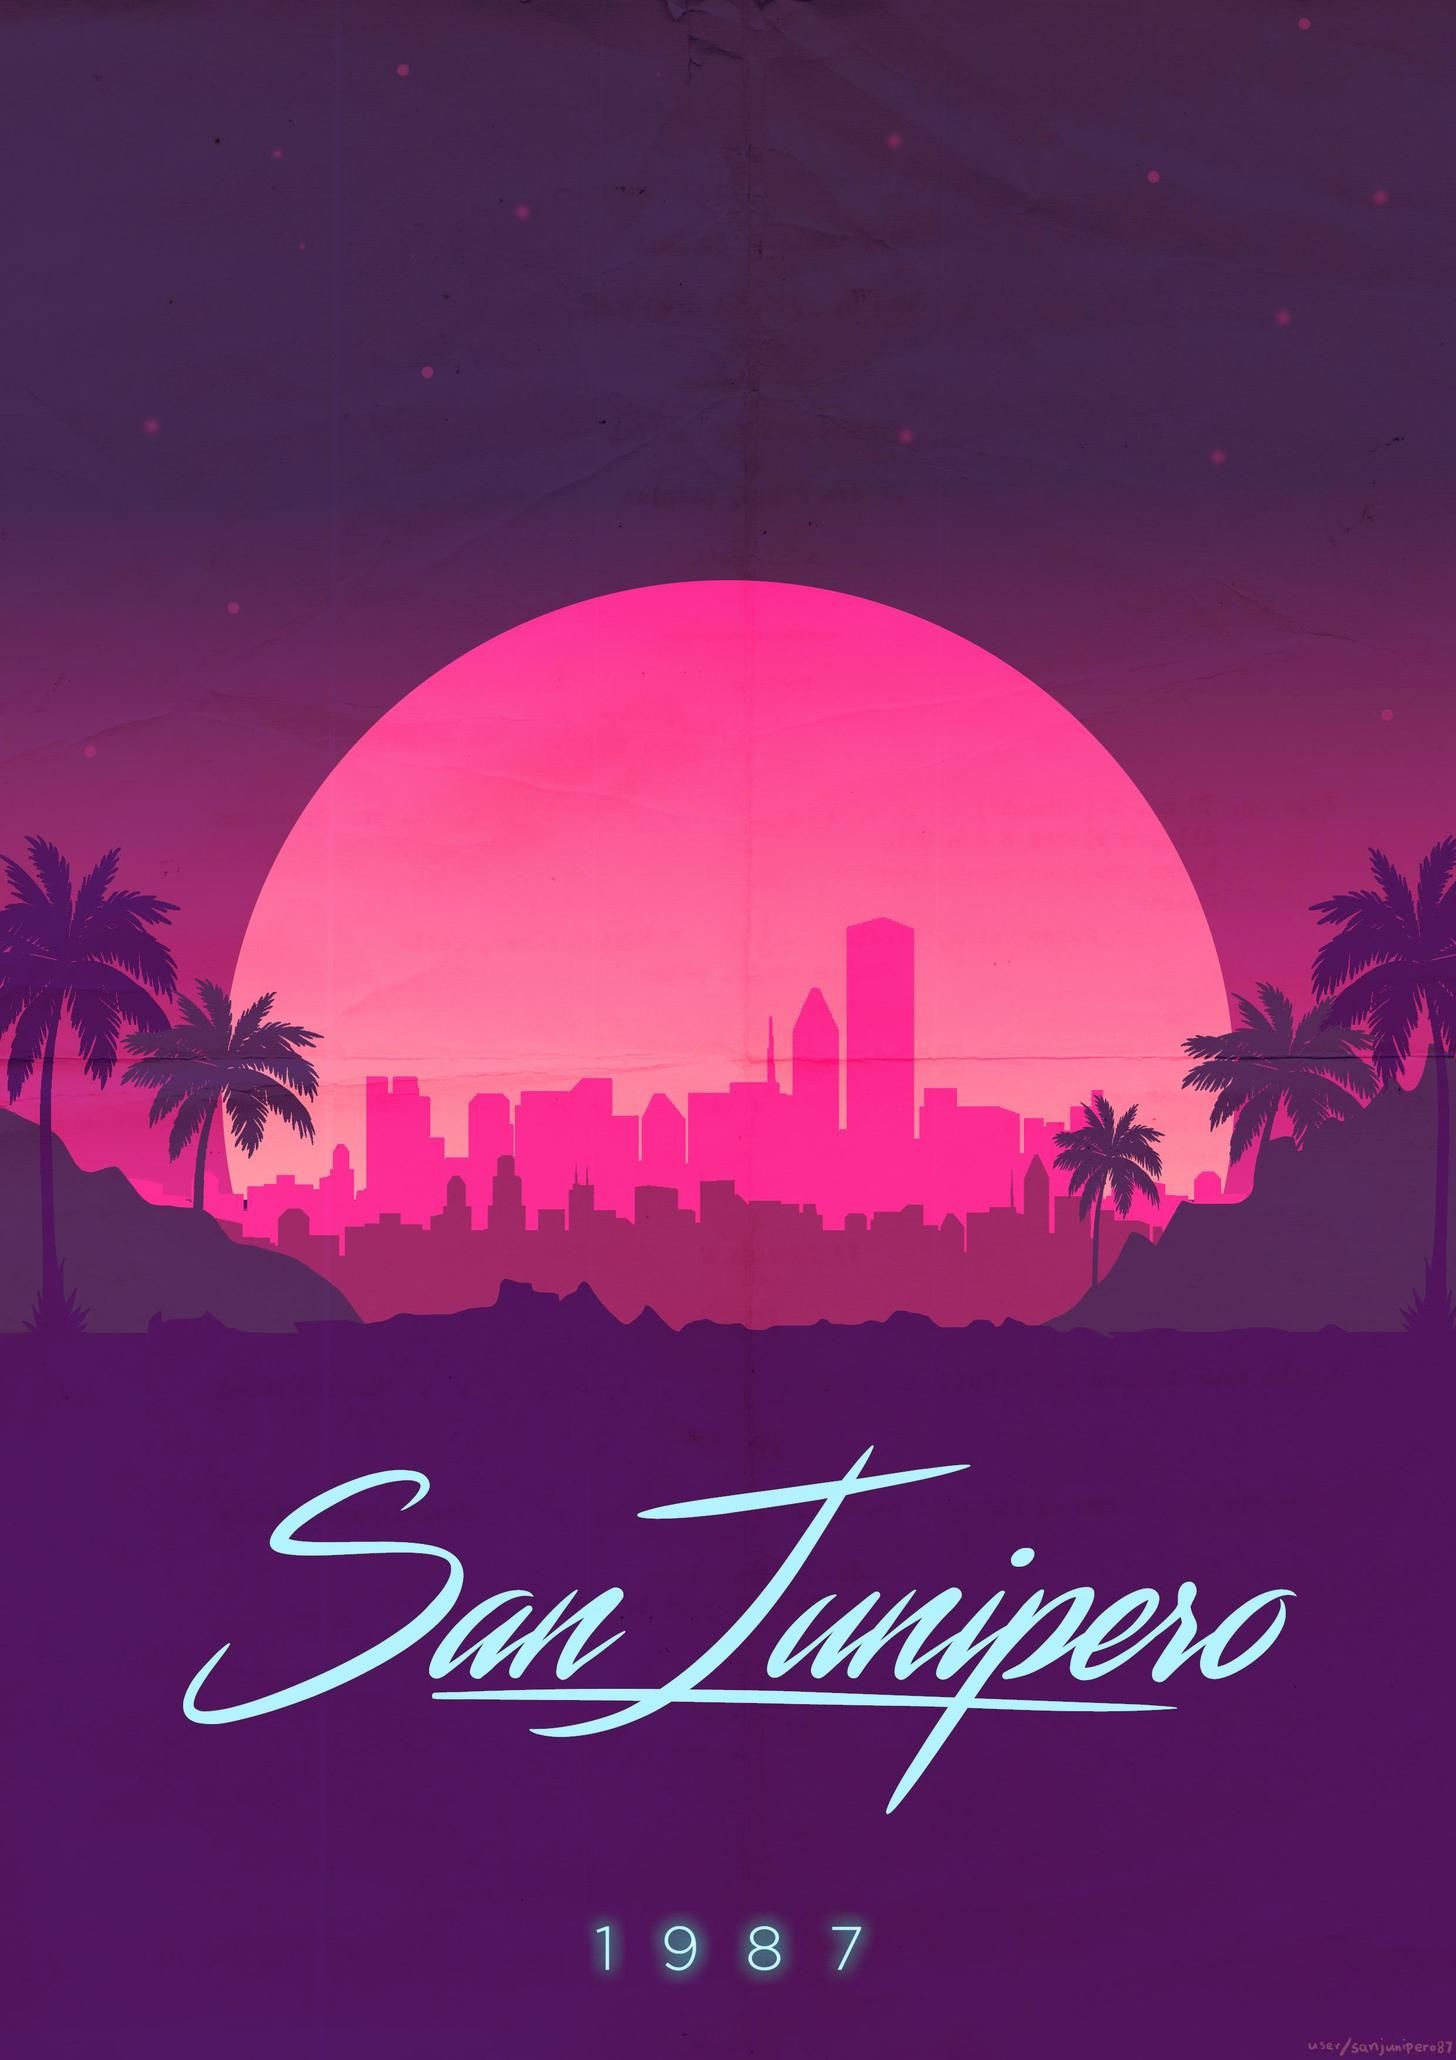 Posters I Made For San Junipero In 2019 Black Mirror San